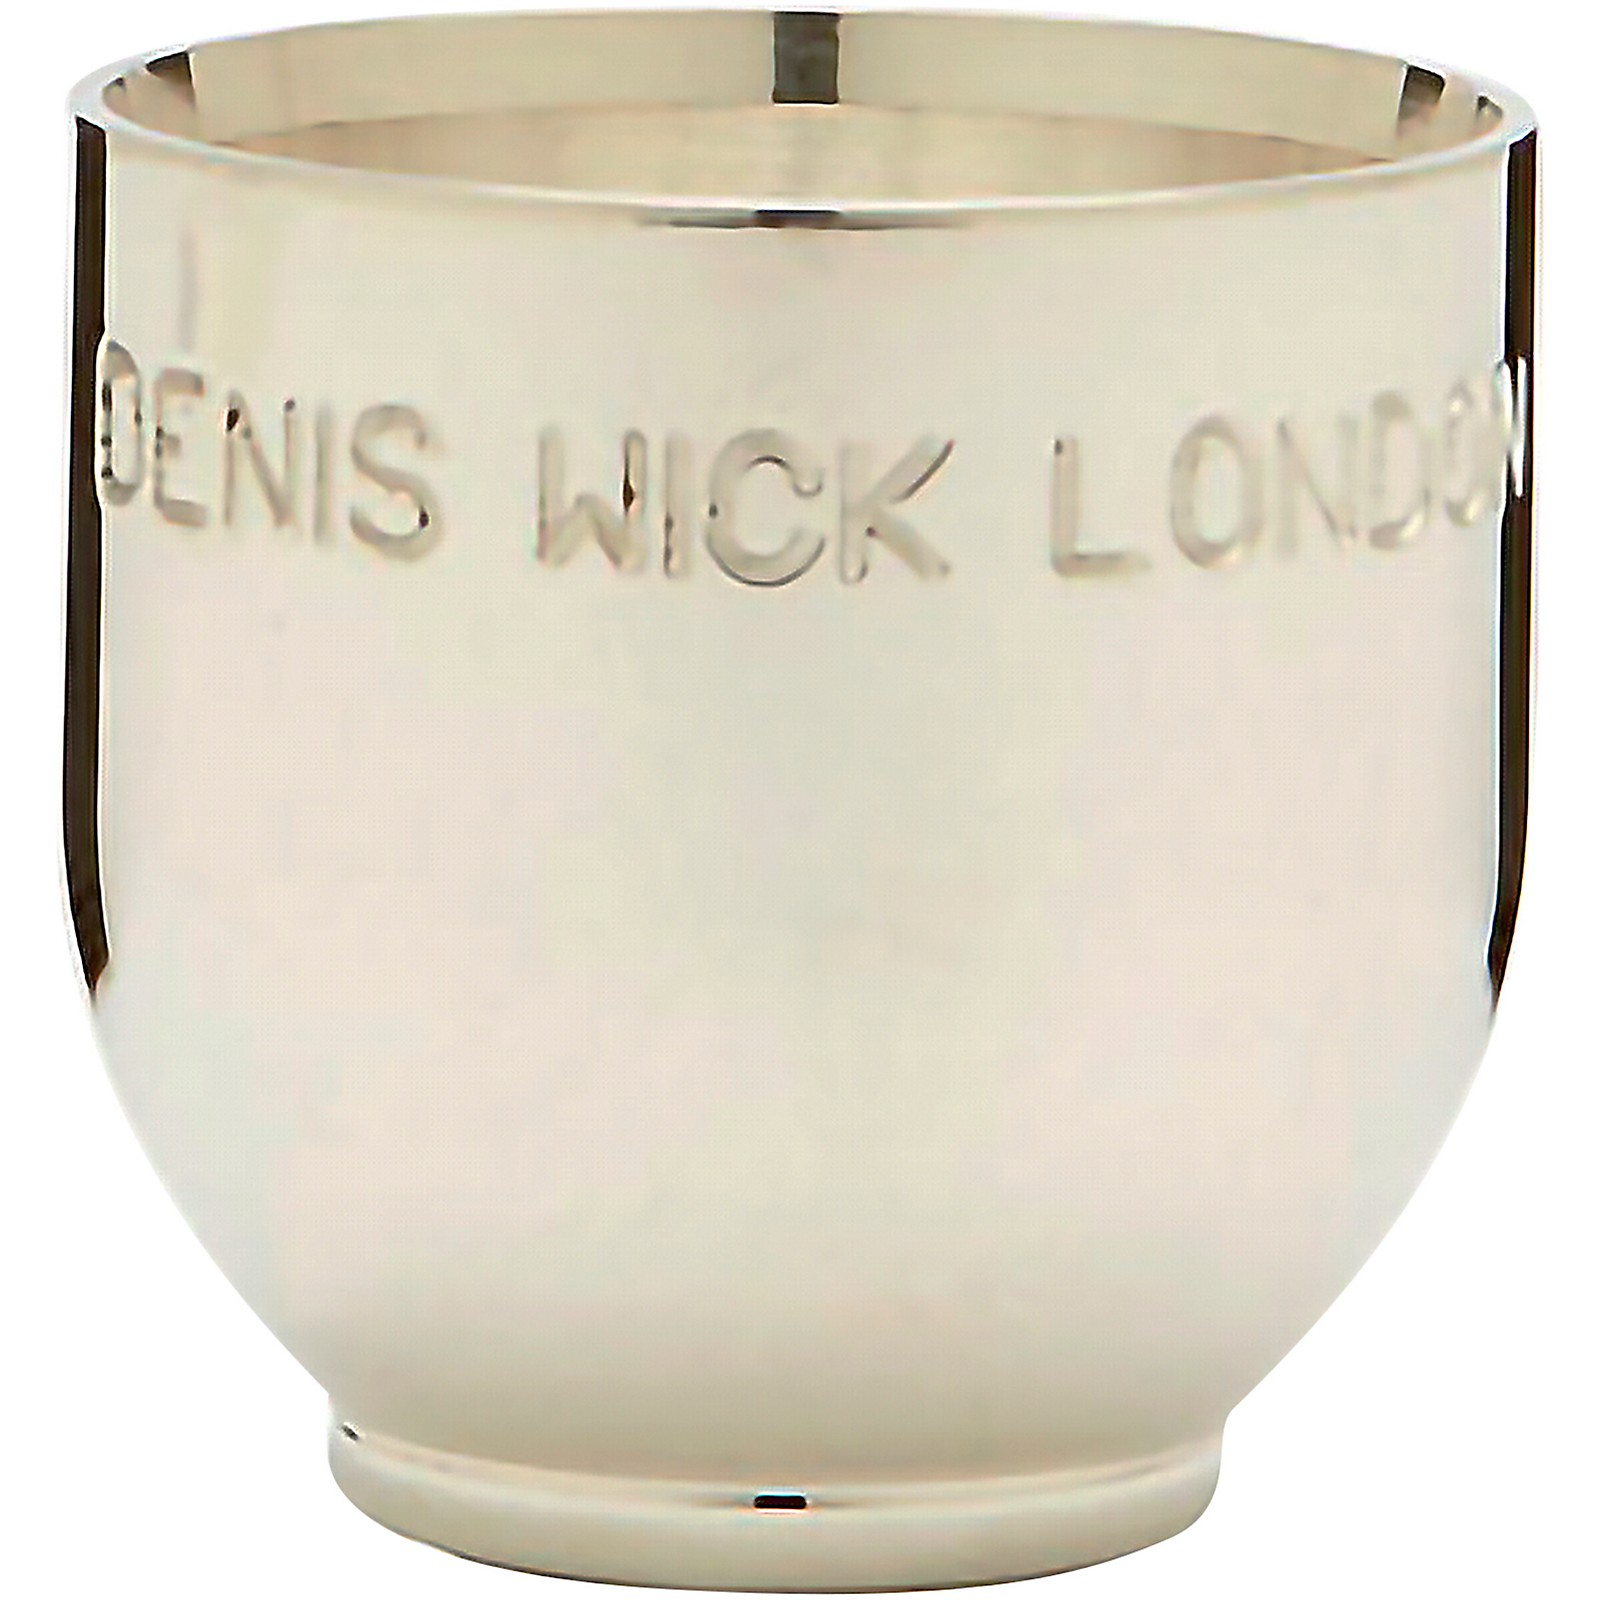 Denis Wick DW6180 HeavyTop Mouthpiece Booster for Cornet Mouthpiece